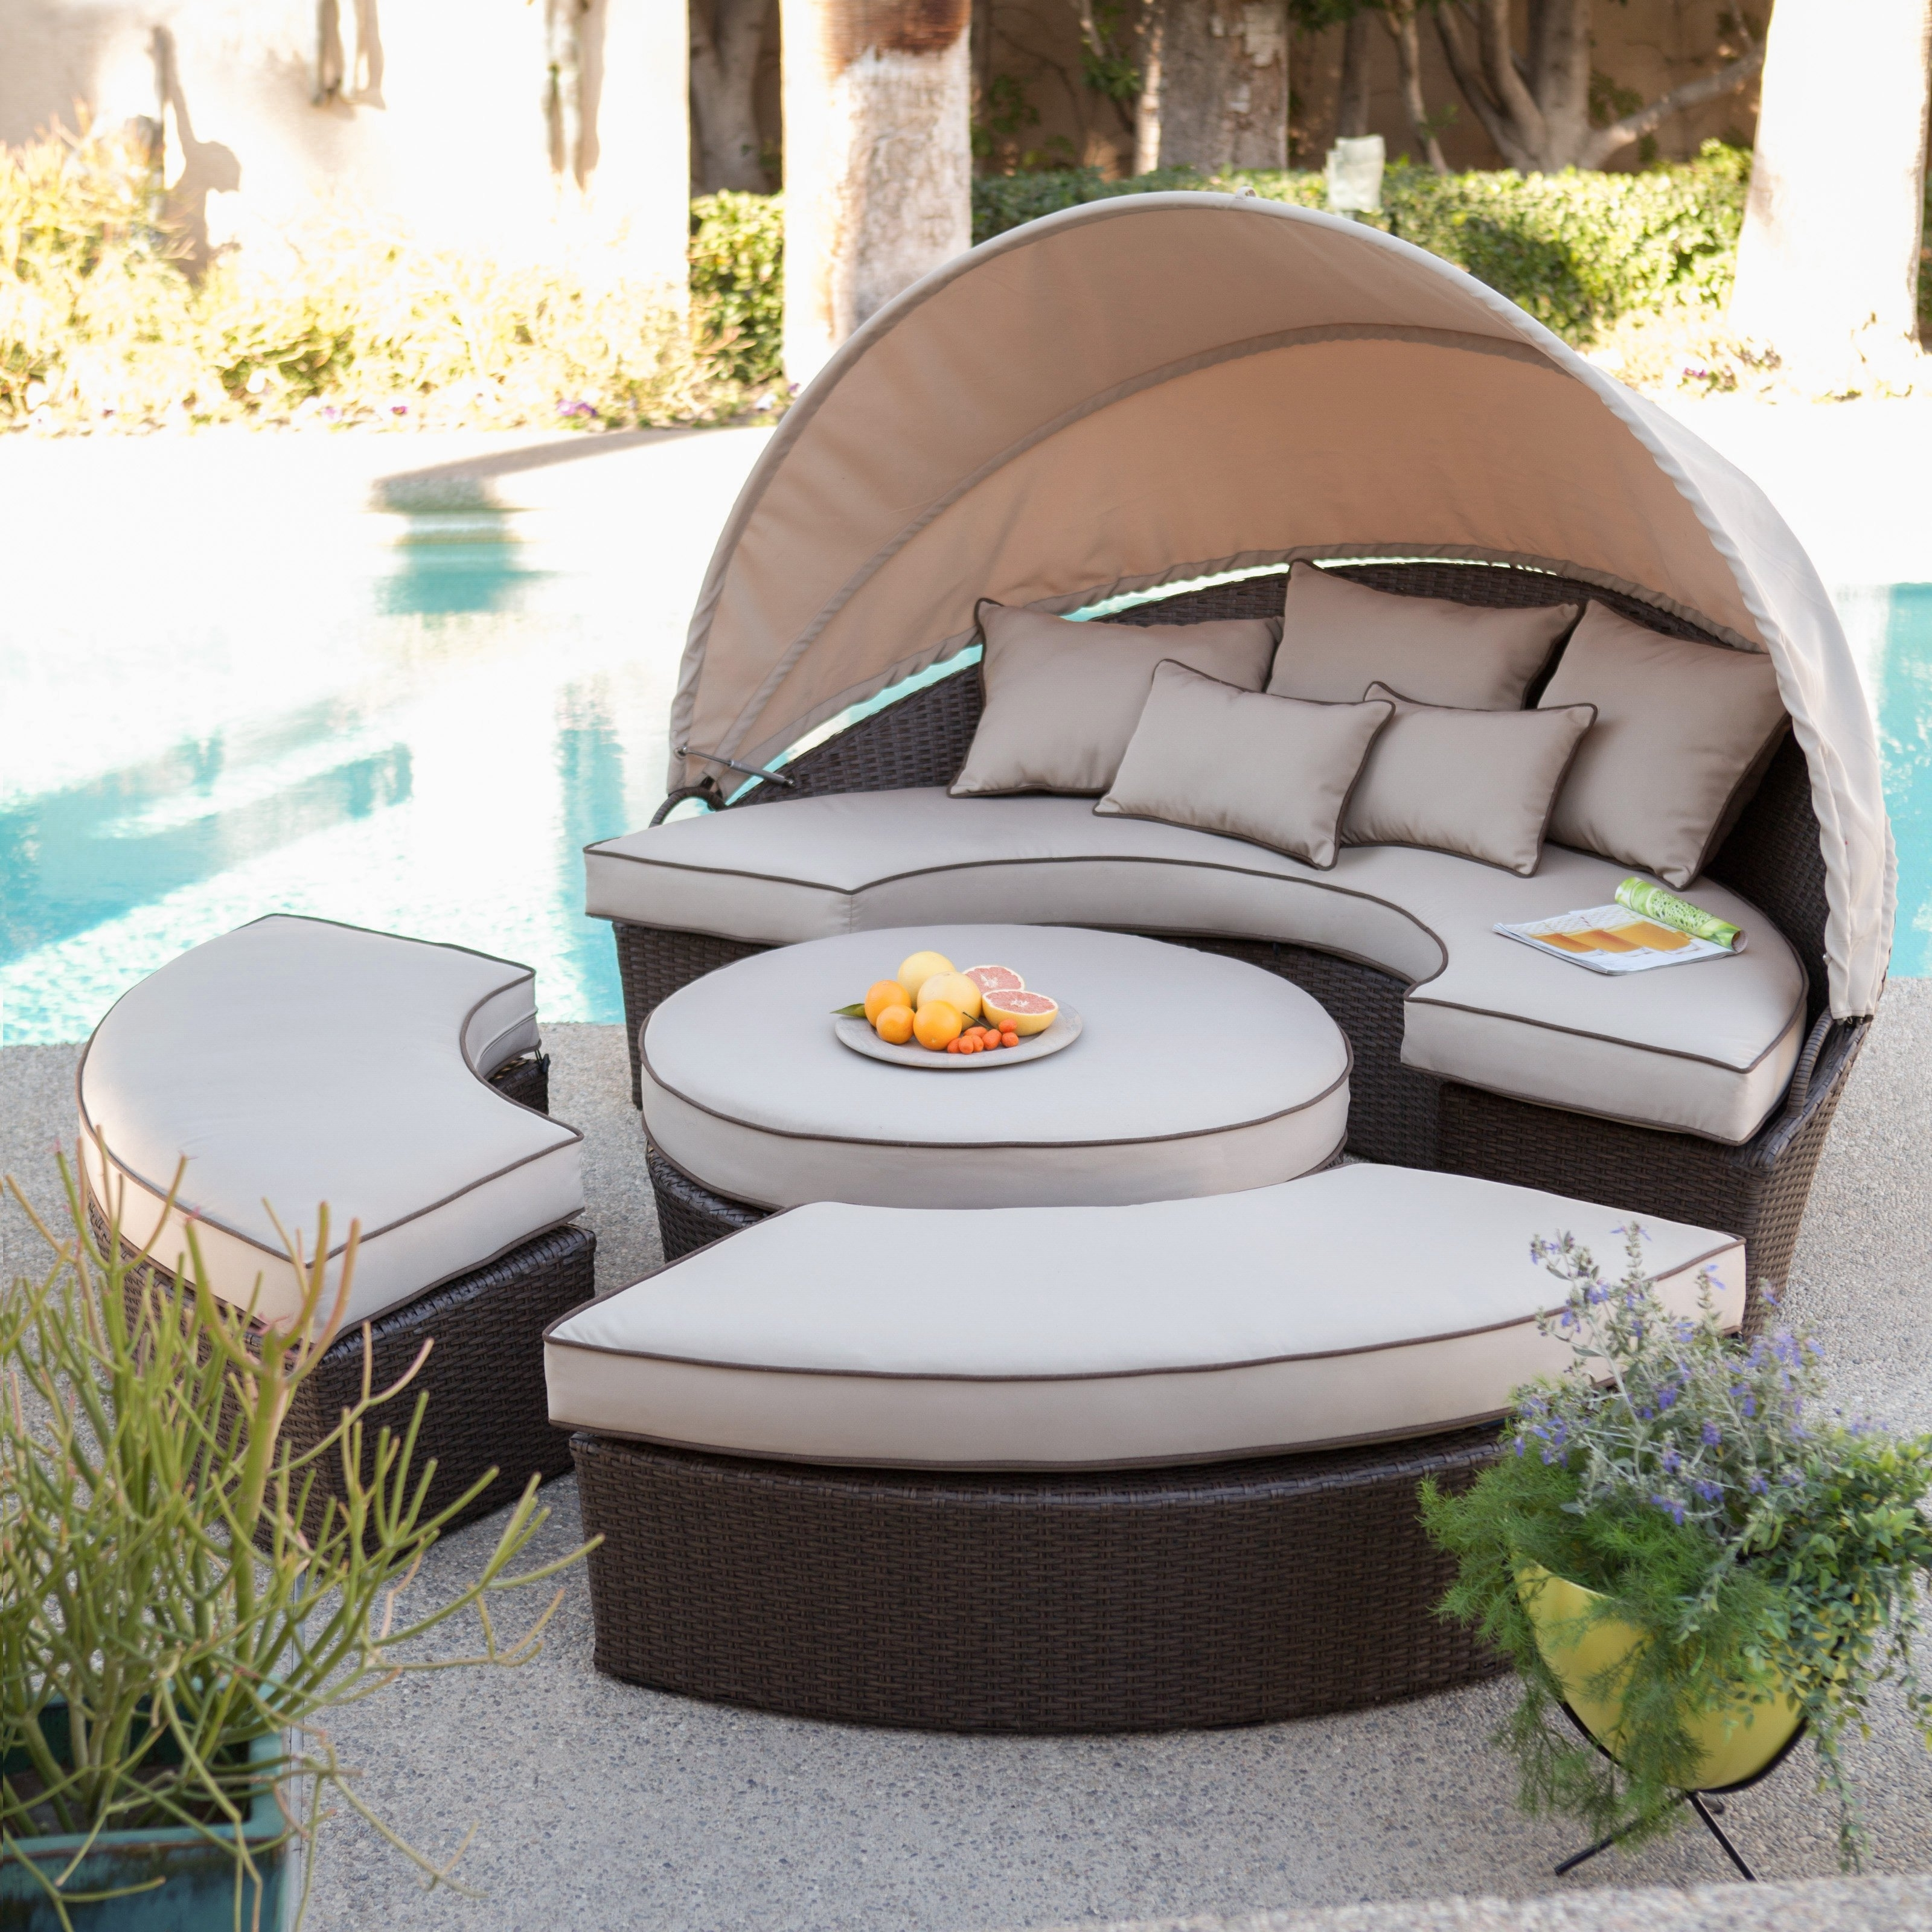 Hayneedle Pertaining To Newest Outdoor Sofas With Canopy (View 5 of 20)